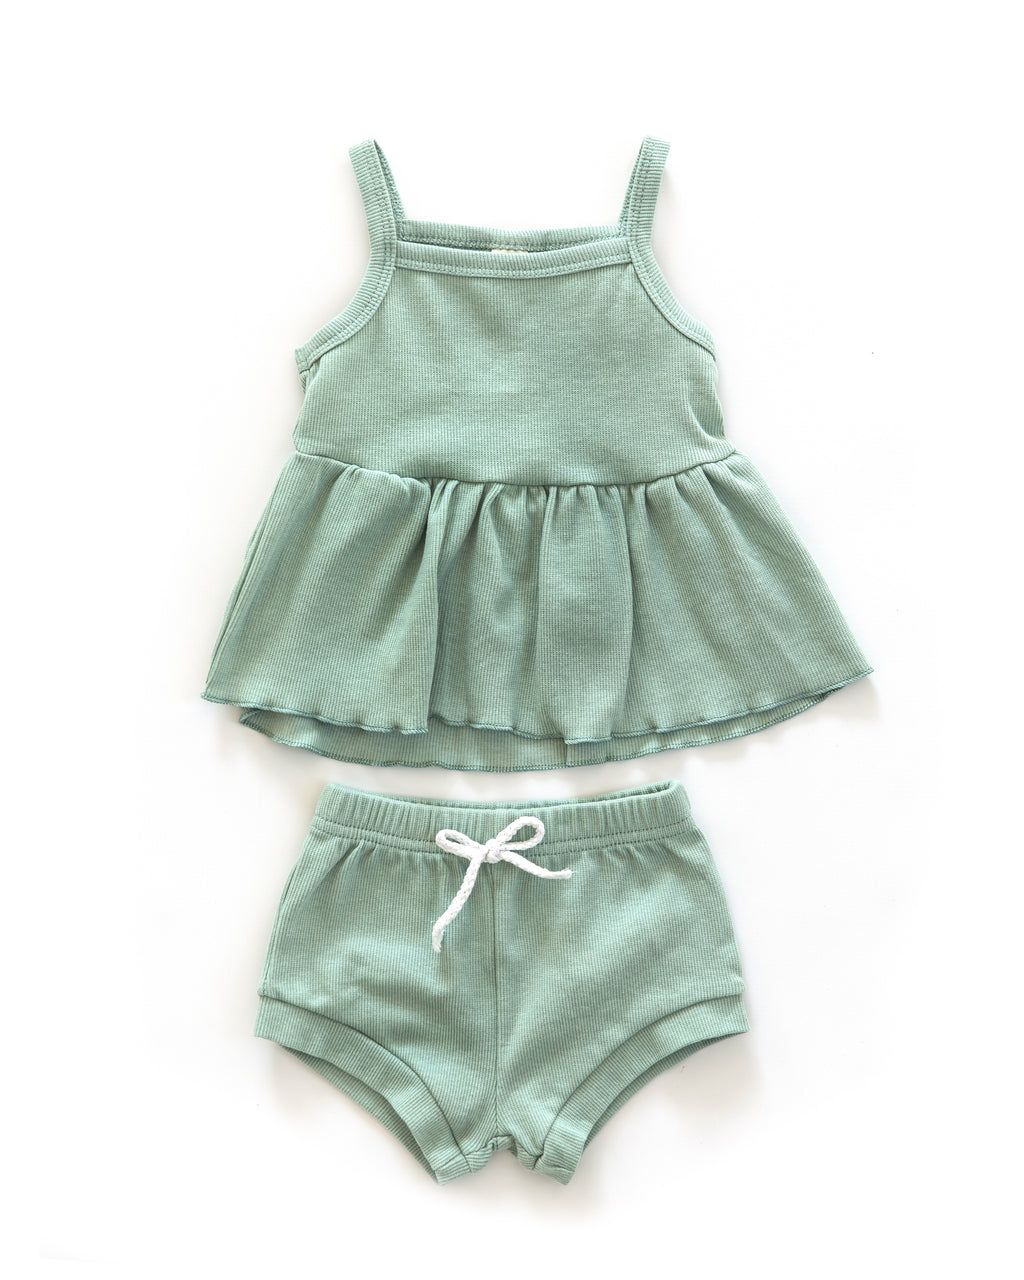 Candice Outfit in Mint - Reverie Threads